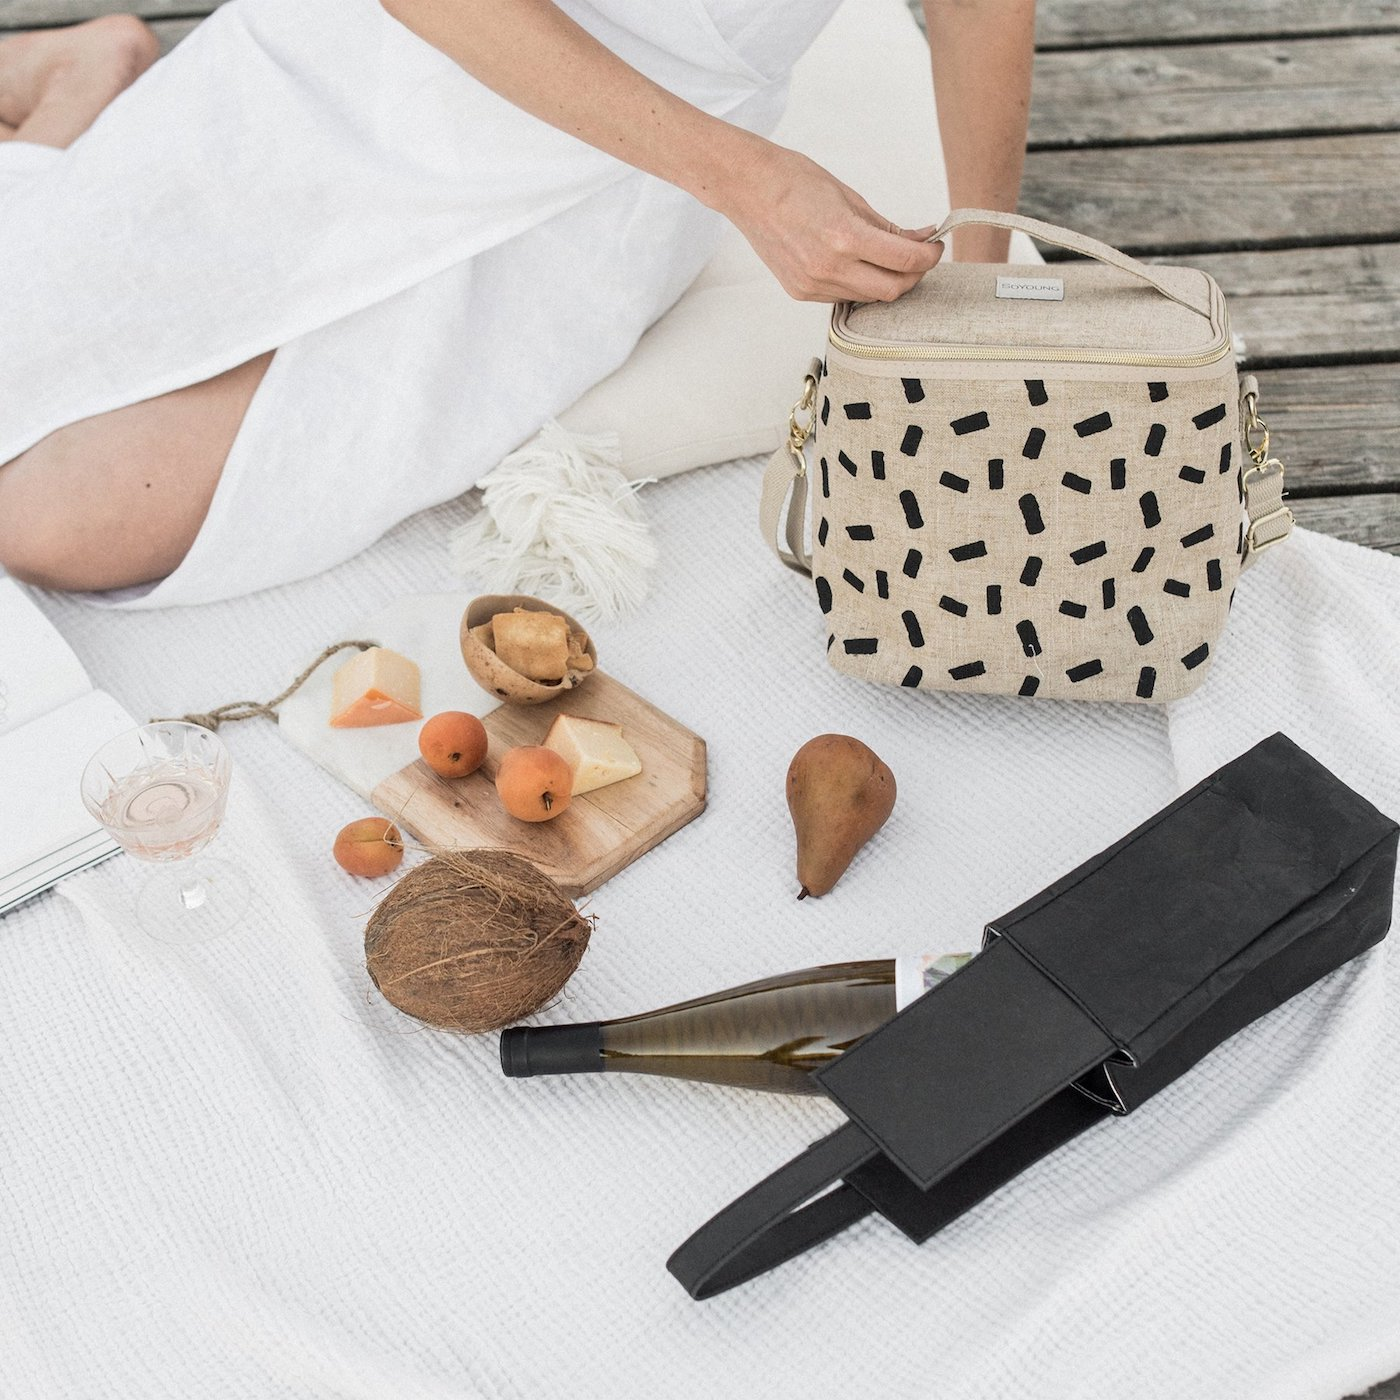 Woman sitting on rug holding lunch cooler